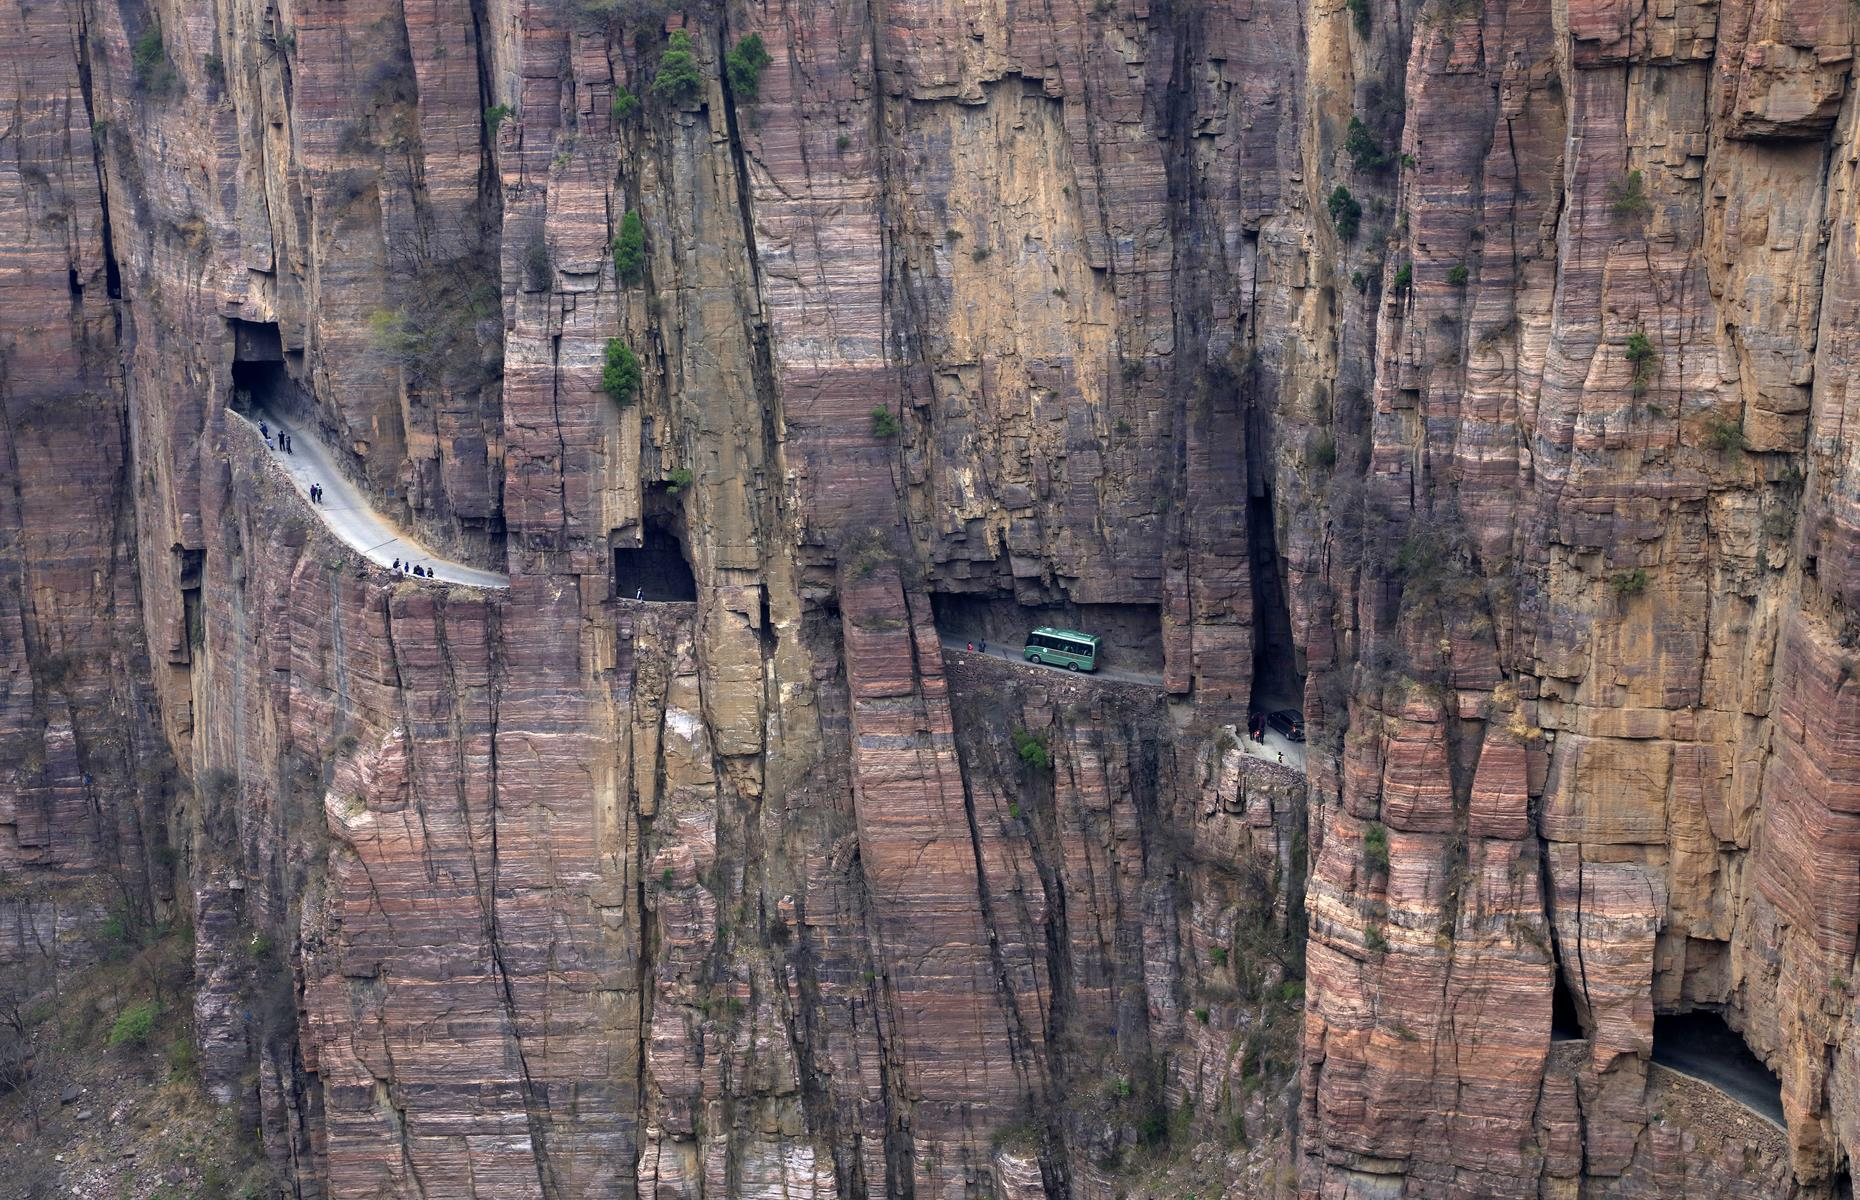 """Slide 42 of 44: It might be less than a mile but driving along the terrifying Guoliang Tunnel will feel like one of the longest drives in your life. The rocky tunnel was carved into China's Taihang Mountains by 13 villagers in the 1970s who wanted a link to the rest of the Huixian, Xinxiang, Henan Province of China. Previously there had only been steep, narrow and dangerous stairs from Guoliang. Uneven and twisty, the tunnel has various """"windows"""" where you can peer down the mountain...if you dare. Talk about dramatic!"""